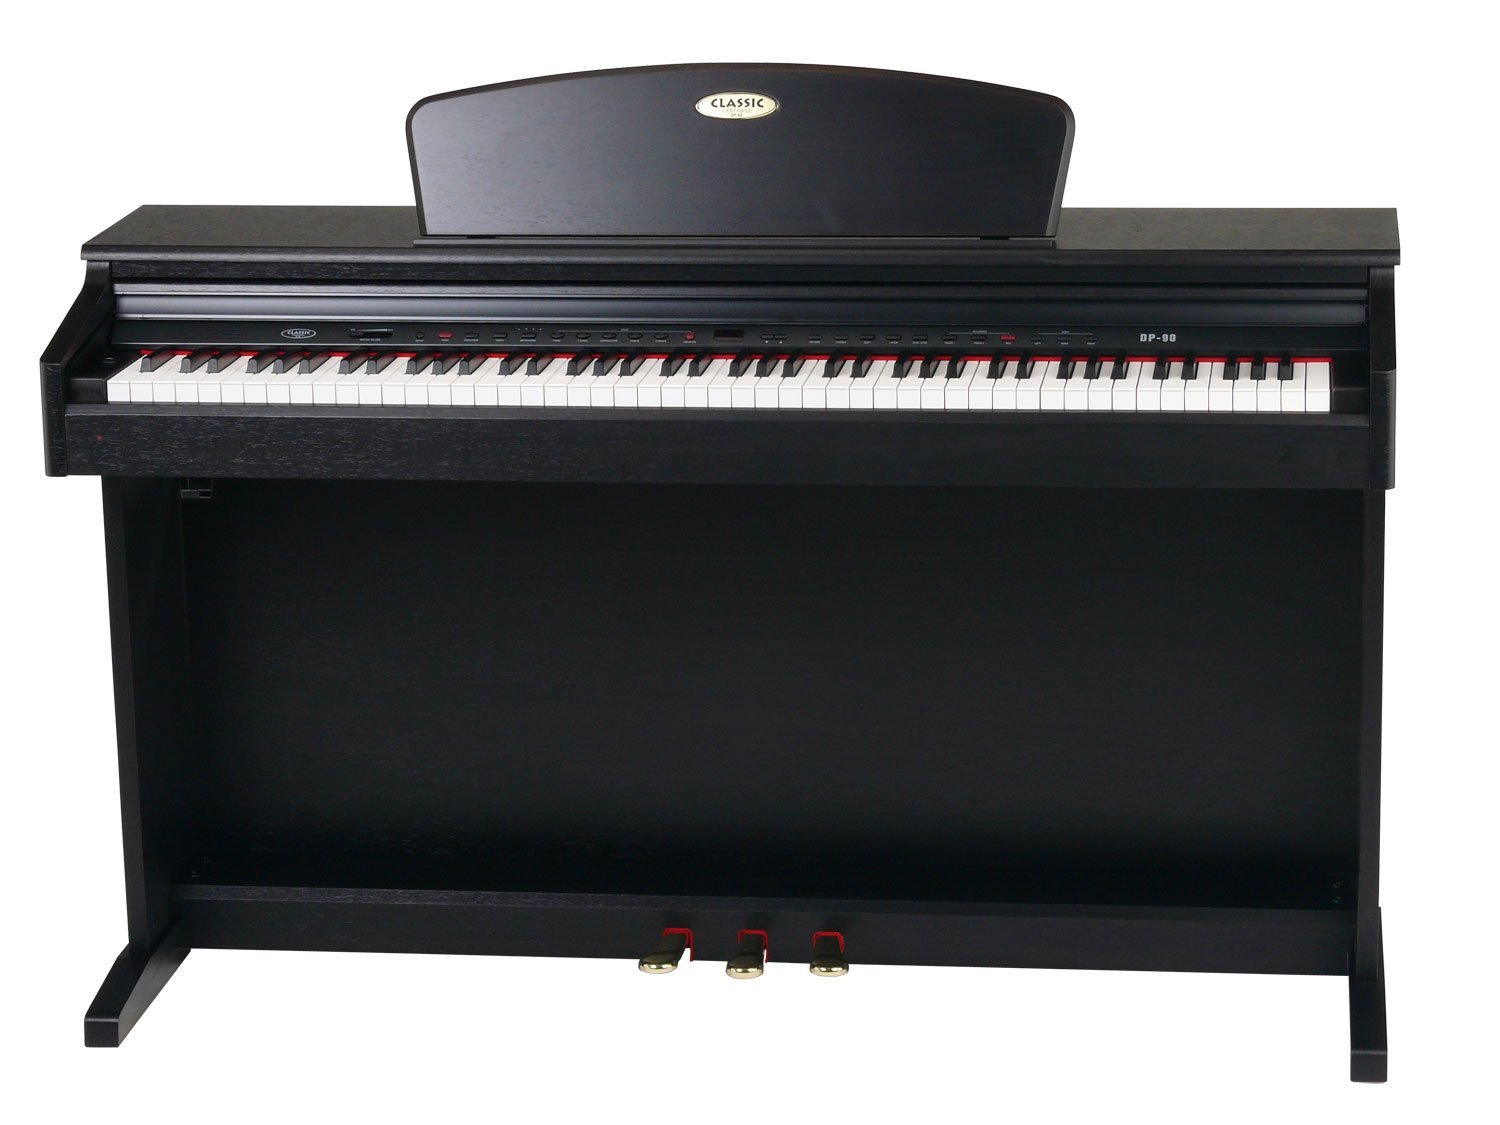 e piano test die besten digitalpianos im vergleich. Black Bedroom Furniture Sets. Home Design Ideas